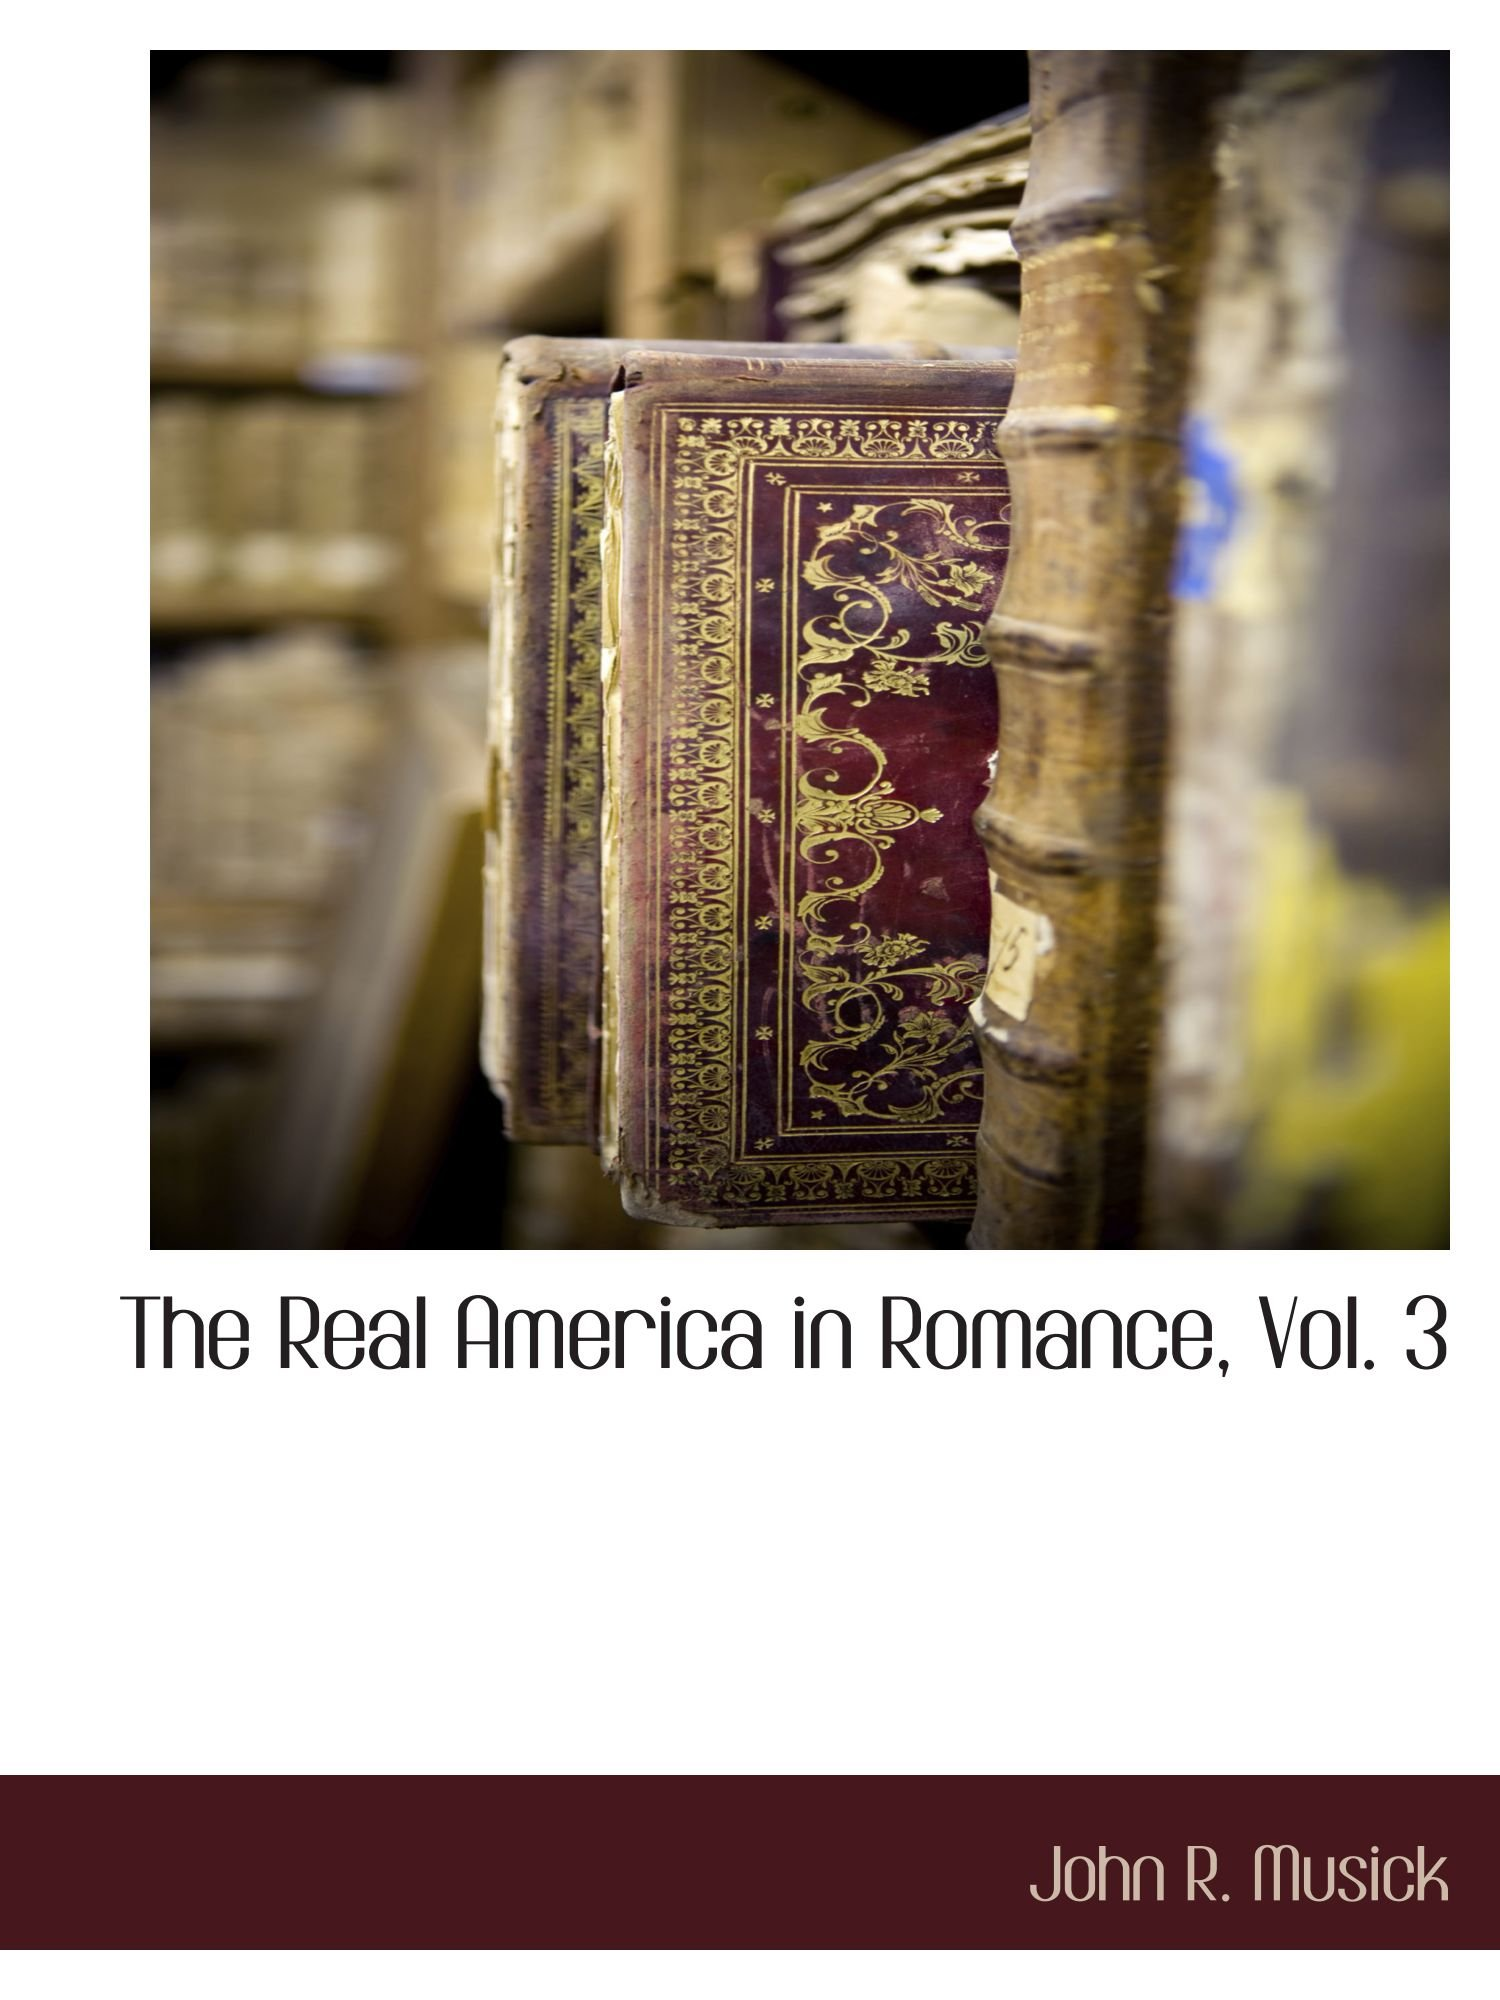 The Real America in Romance, Vol. 3 ebook